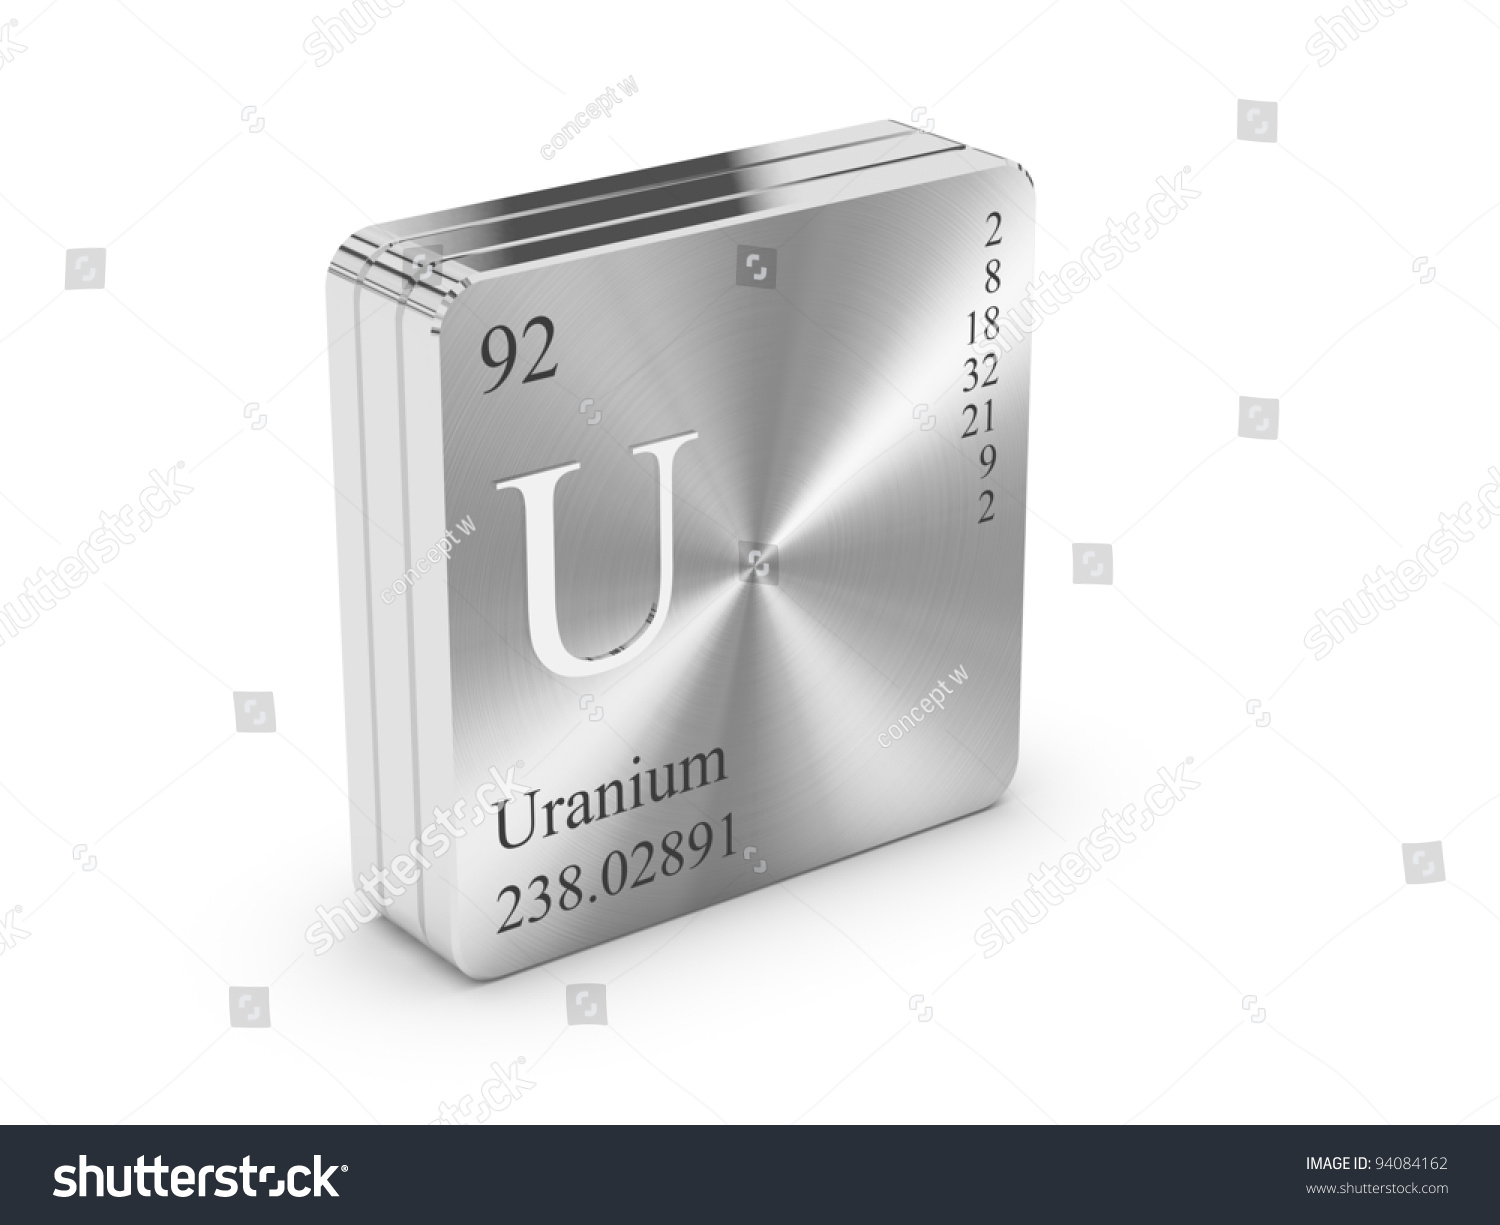 Uranium element periodic table on metal stock illustration uranium element of the periodic table on metal steel block gamestrikefo Image collections